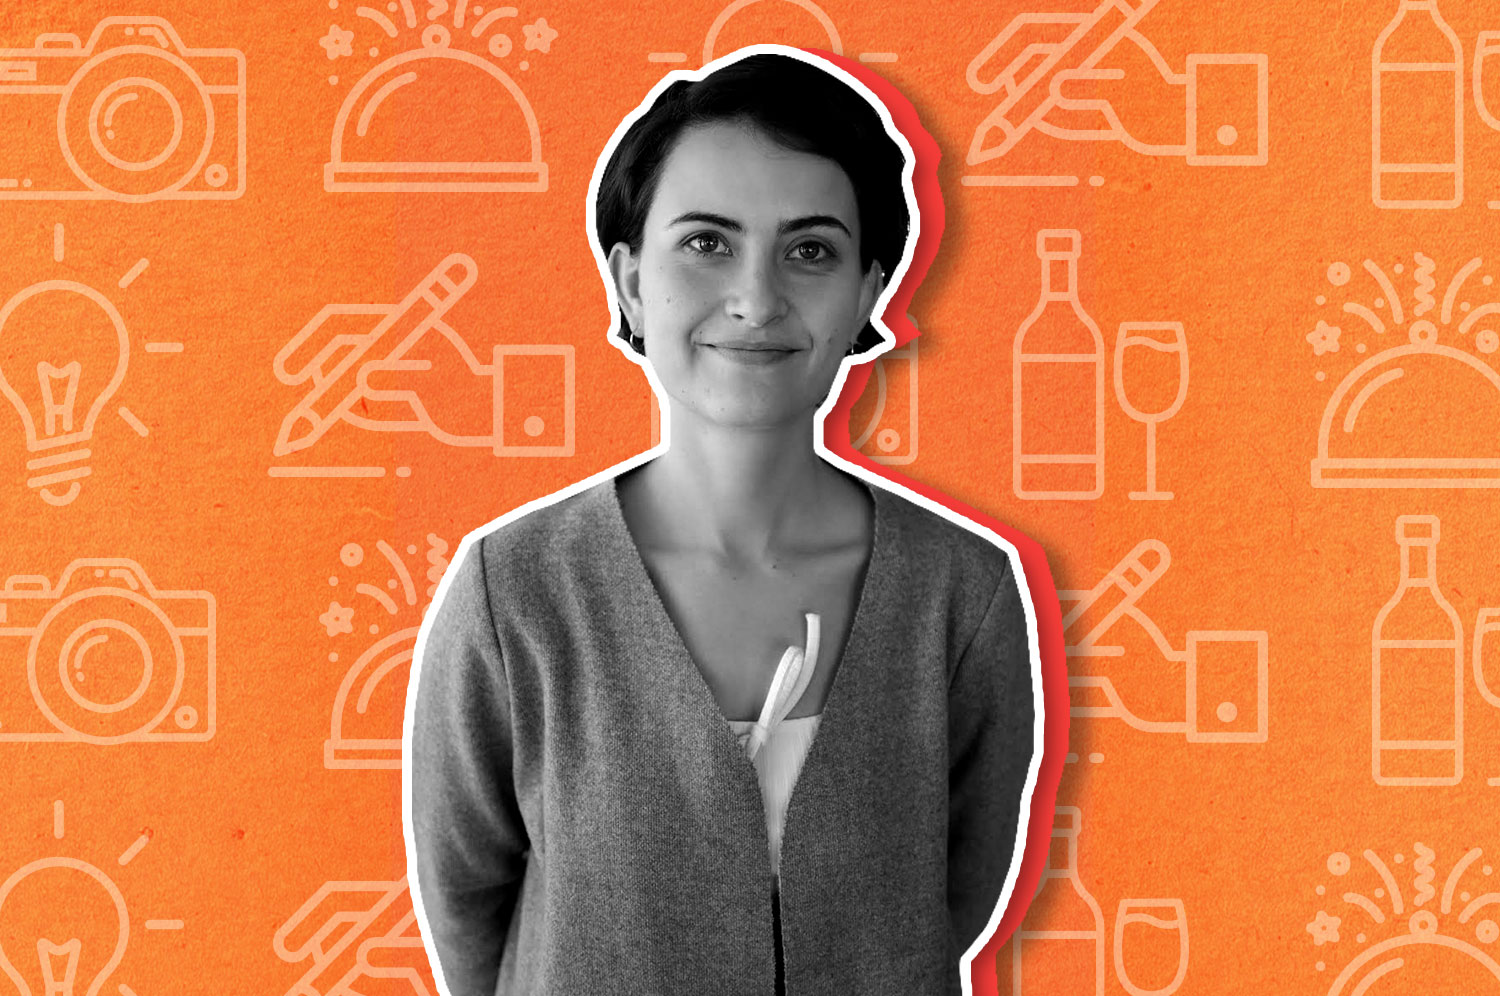 A black and white cutout photo of a woman in a button up sweater with cropped brown hair smiling at the camera on an orange illustrated background.